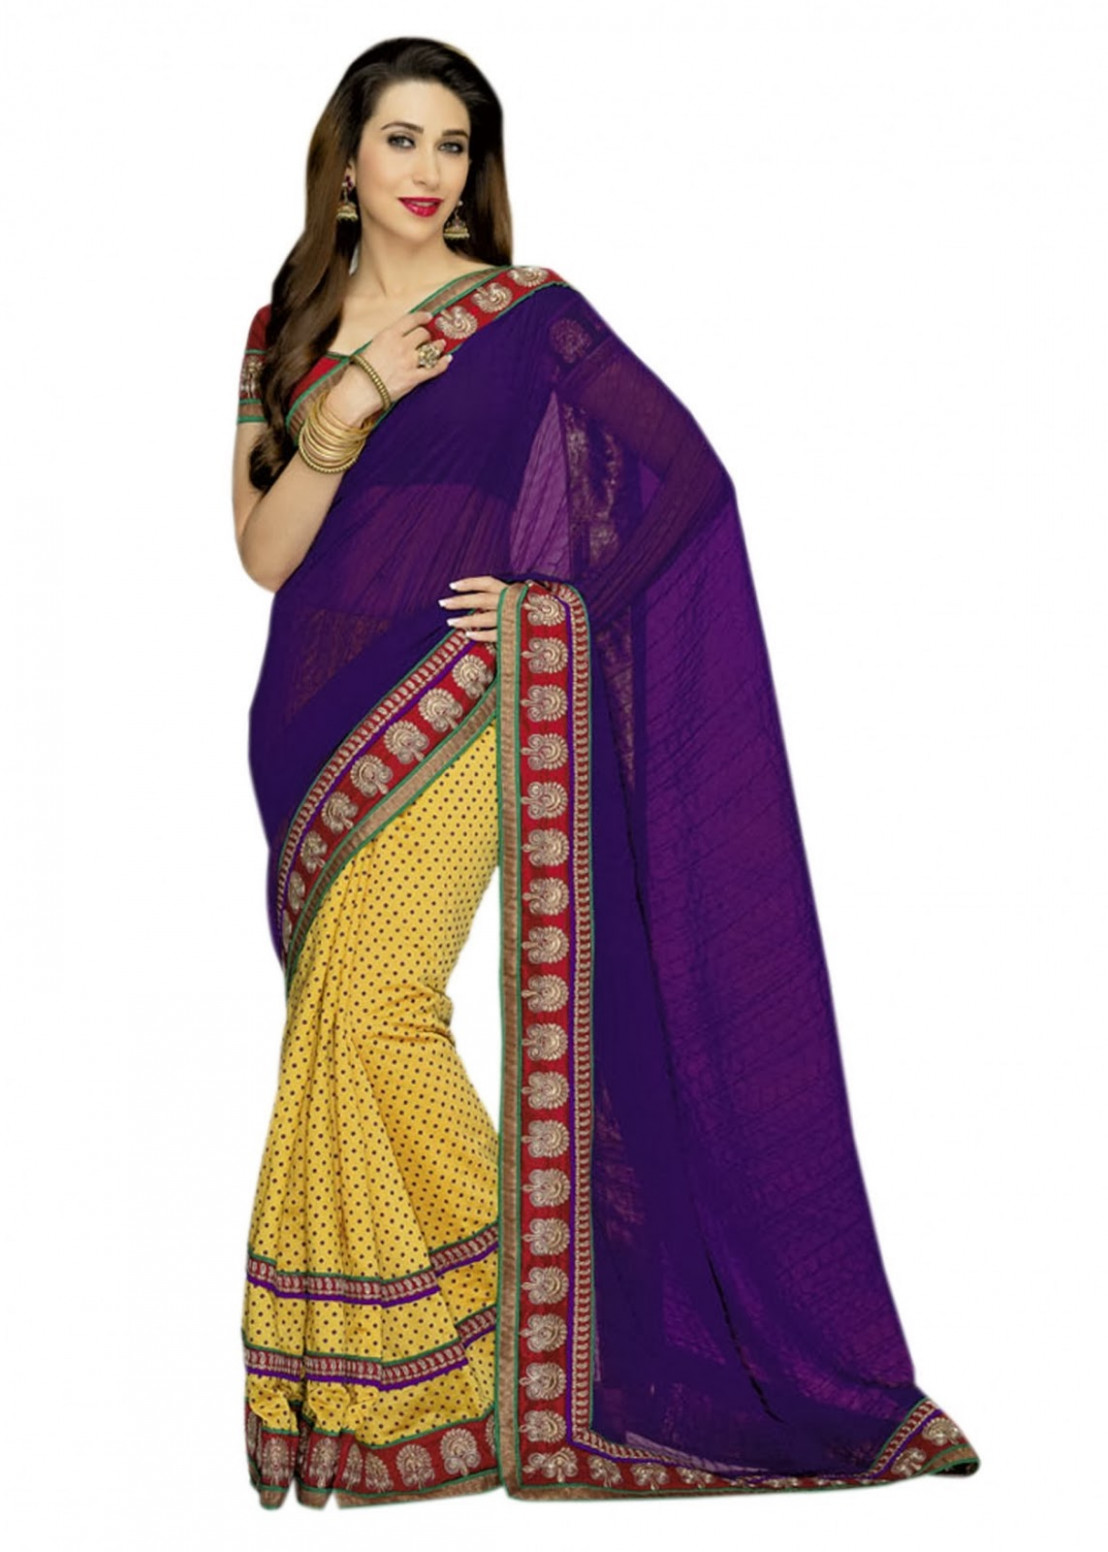 FASHION SHOW MAKER : Indian traditional dress saree or